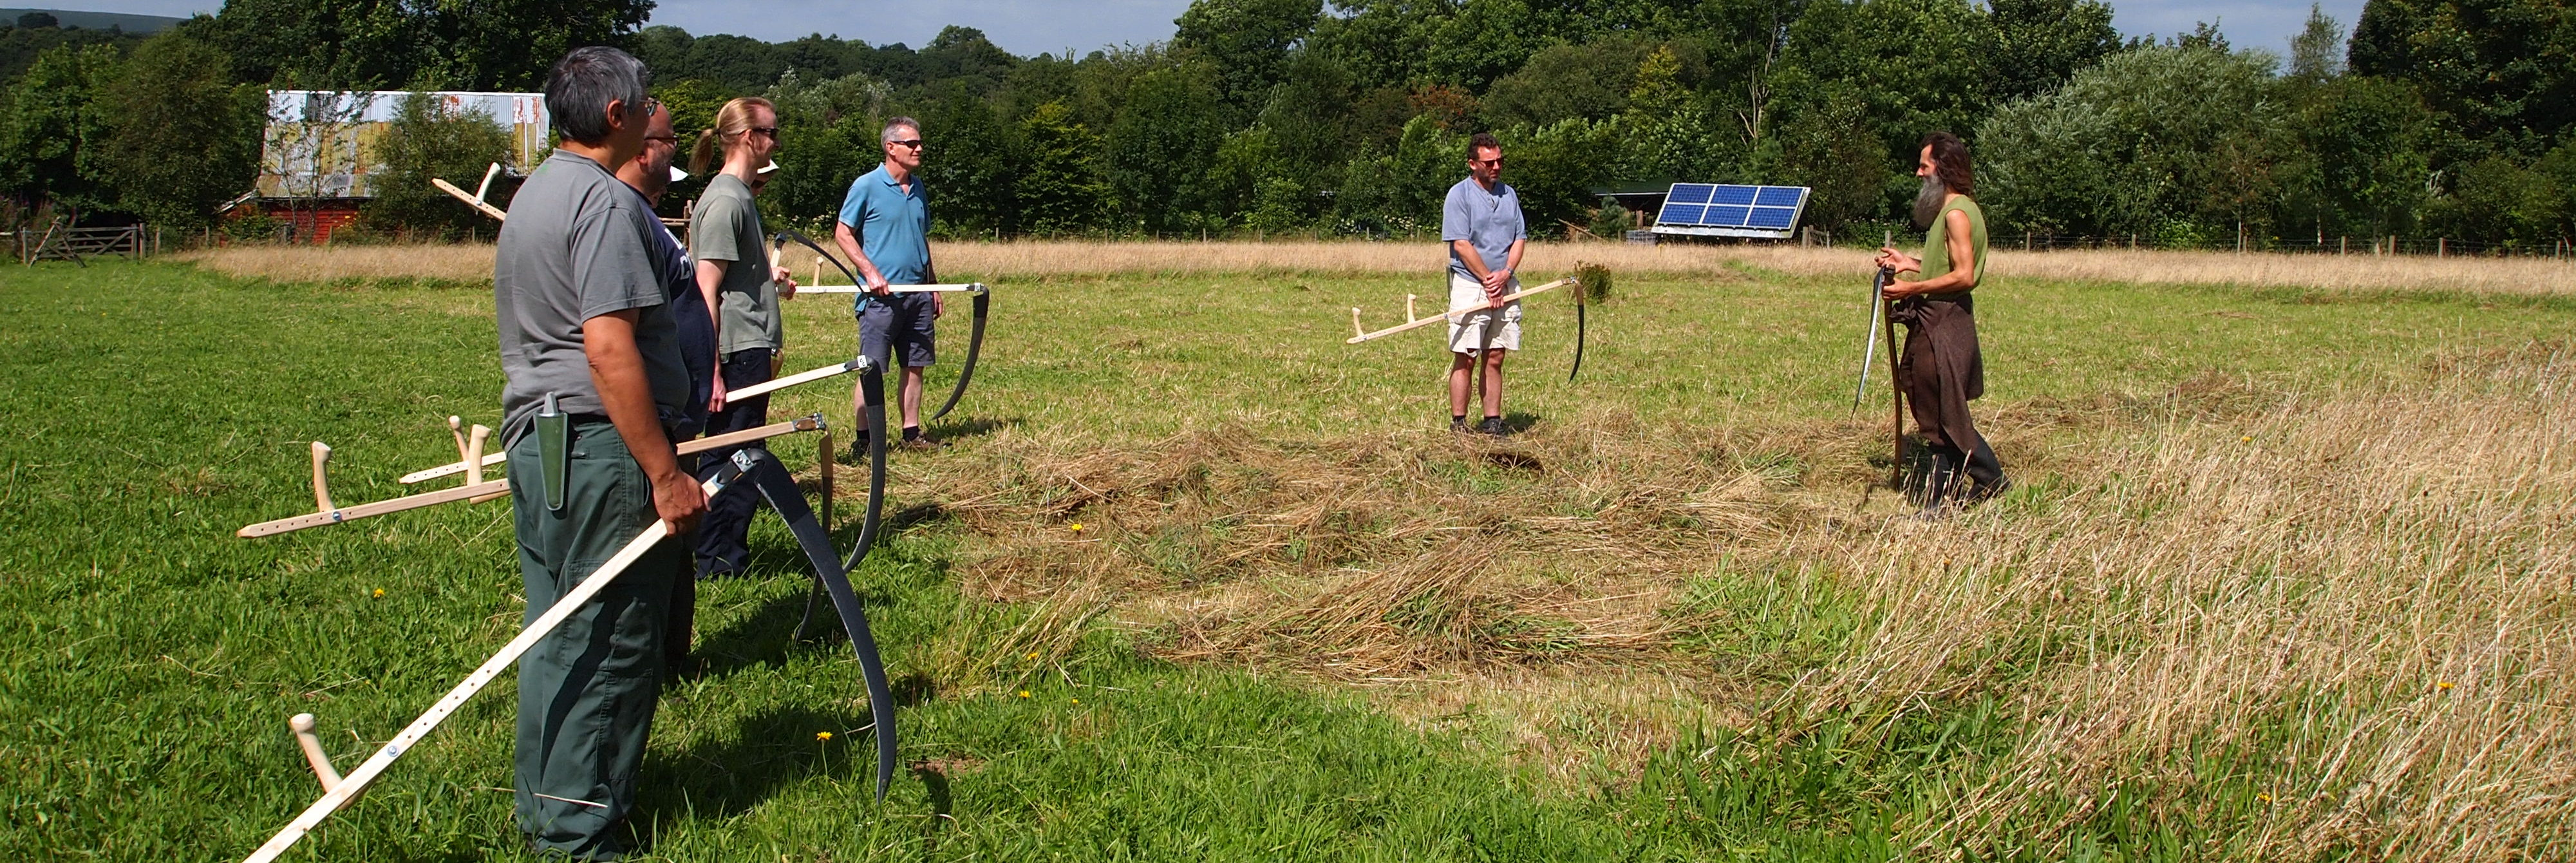 Learning to Scythe in the Hay Meadow